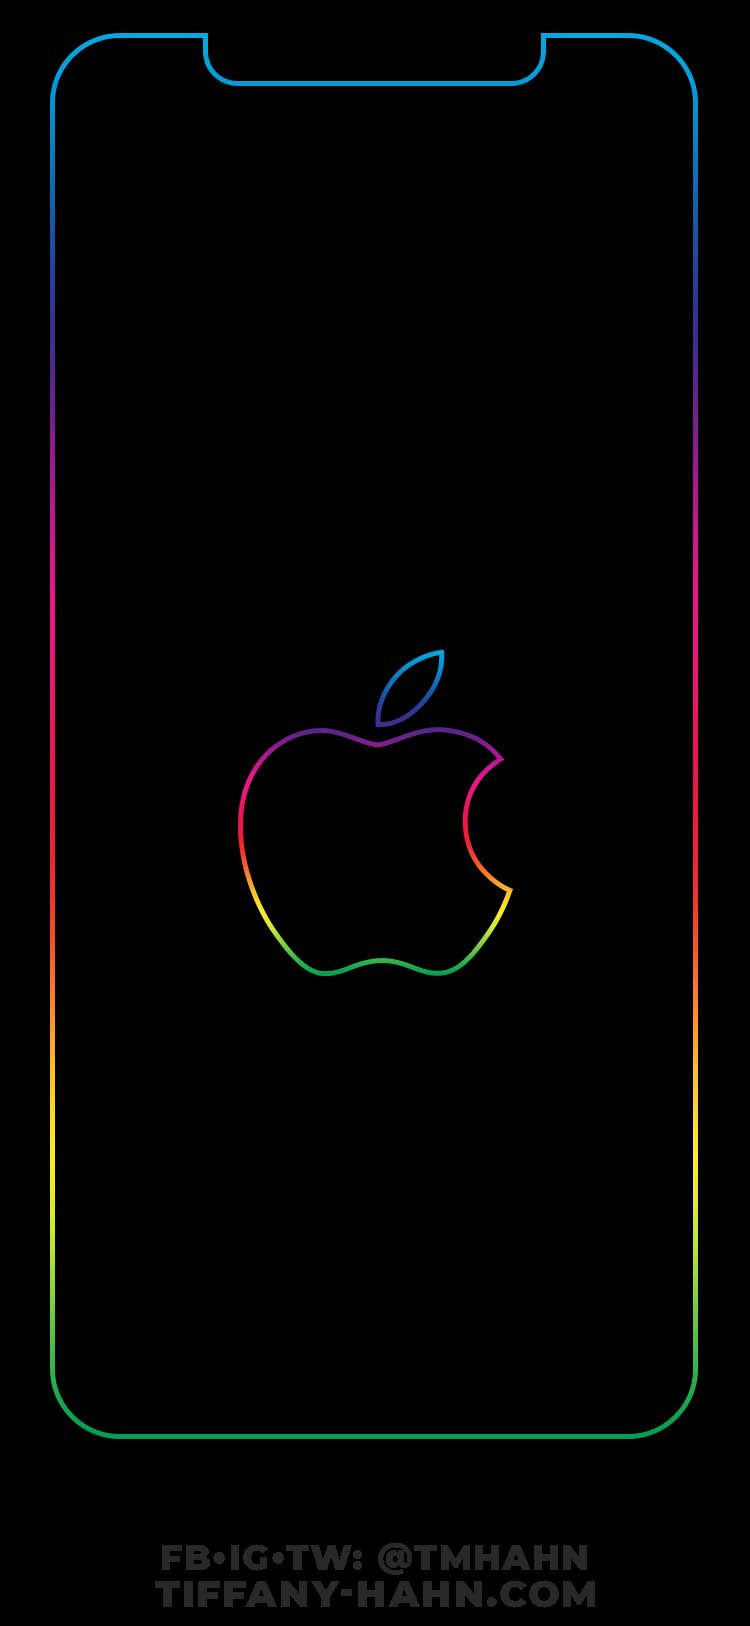 This Wallpaper Will Perfectly Fit The Iphone Xs Max In Zoomed Mode Settings Disp Rainbow Wallpaper Iphone Iphone Homescreen Wallpaper Apple Wallpaper Iphone